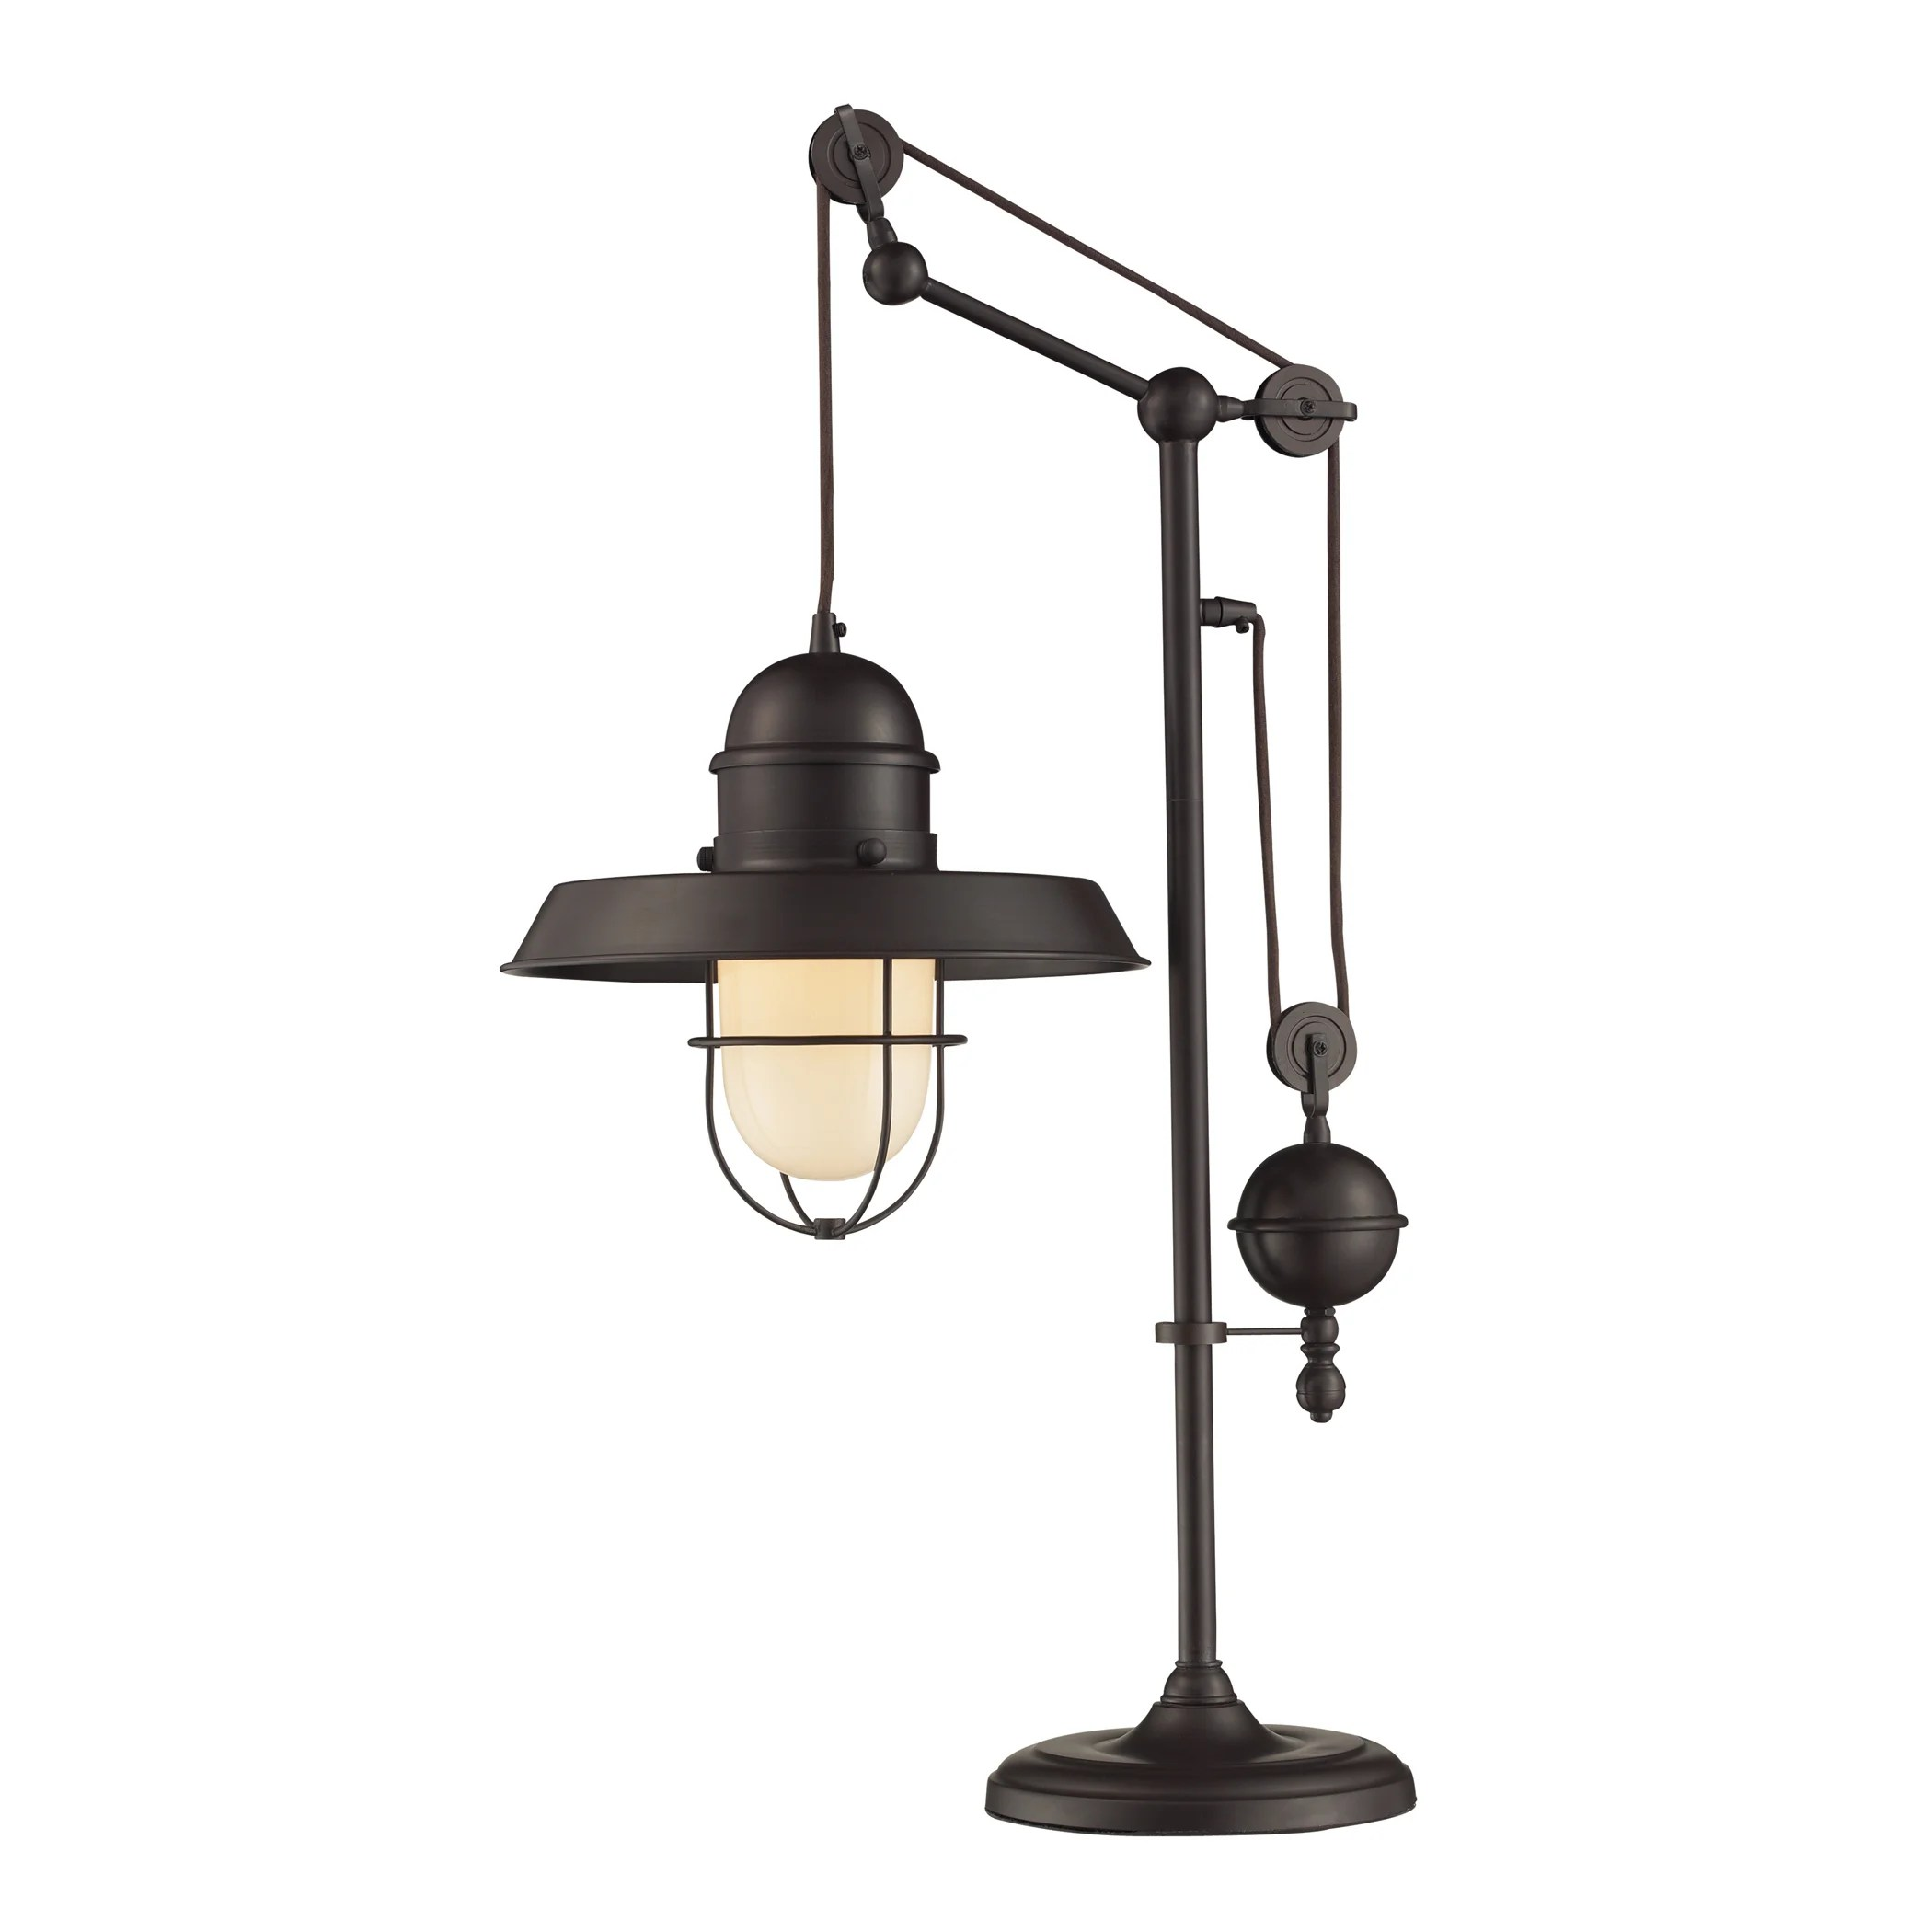 "Dimond Lighting Oil-rubbed Bronze Metal 1-light Table Lamp - 17""w x 12""d x 32""h"